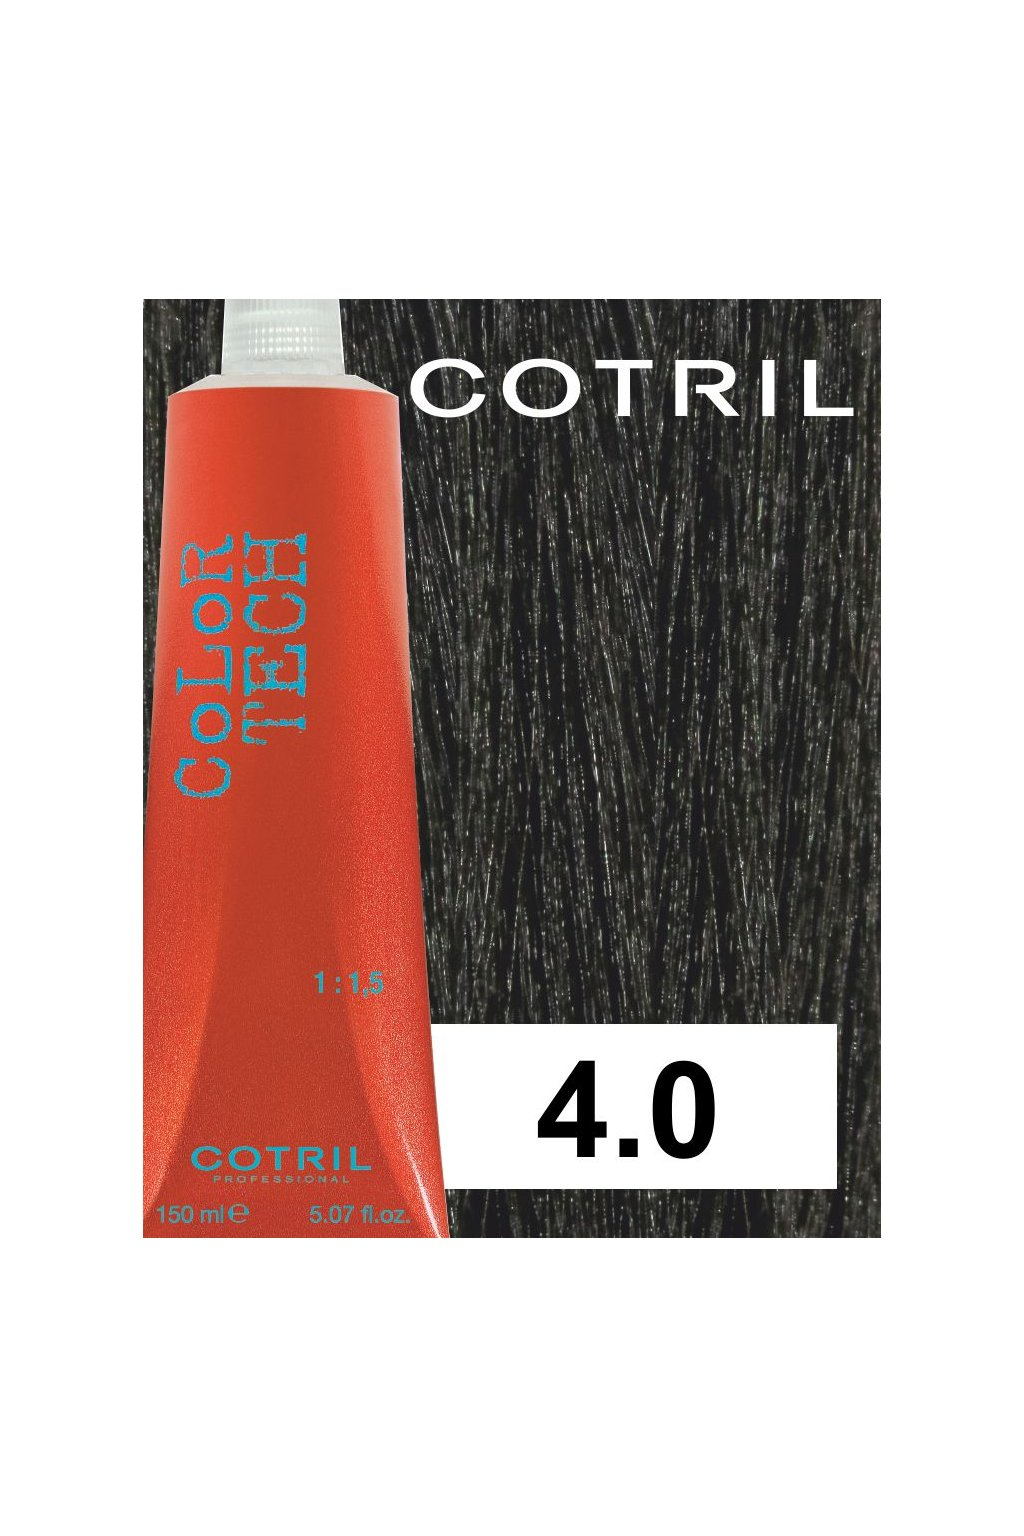 4 0 ct cotril